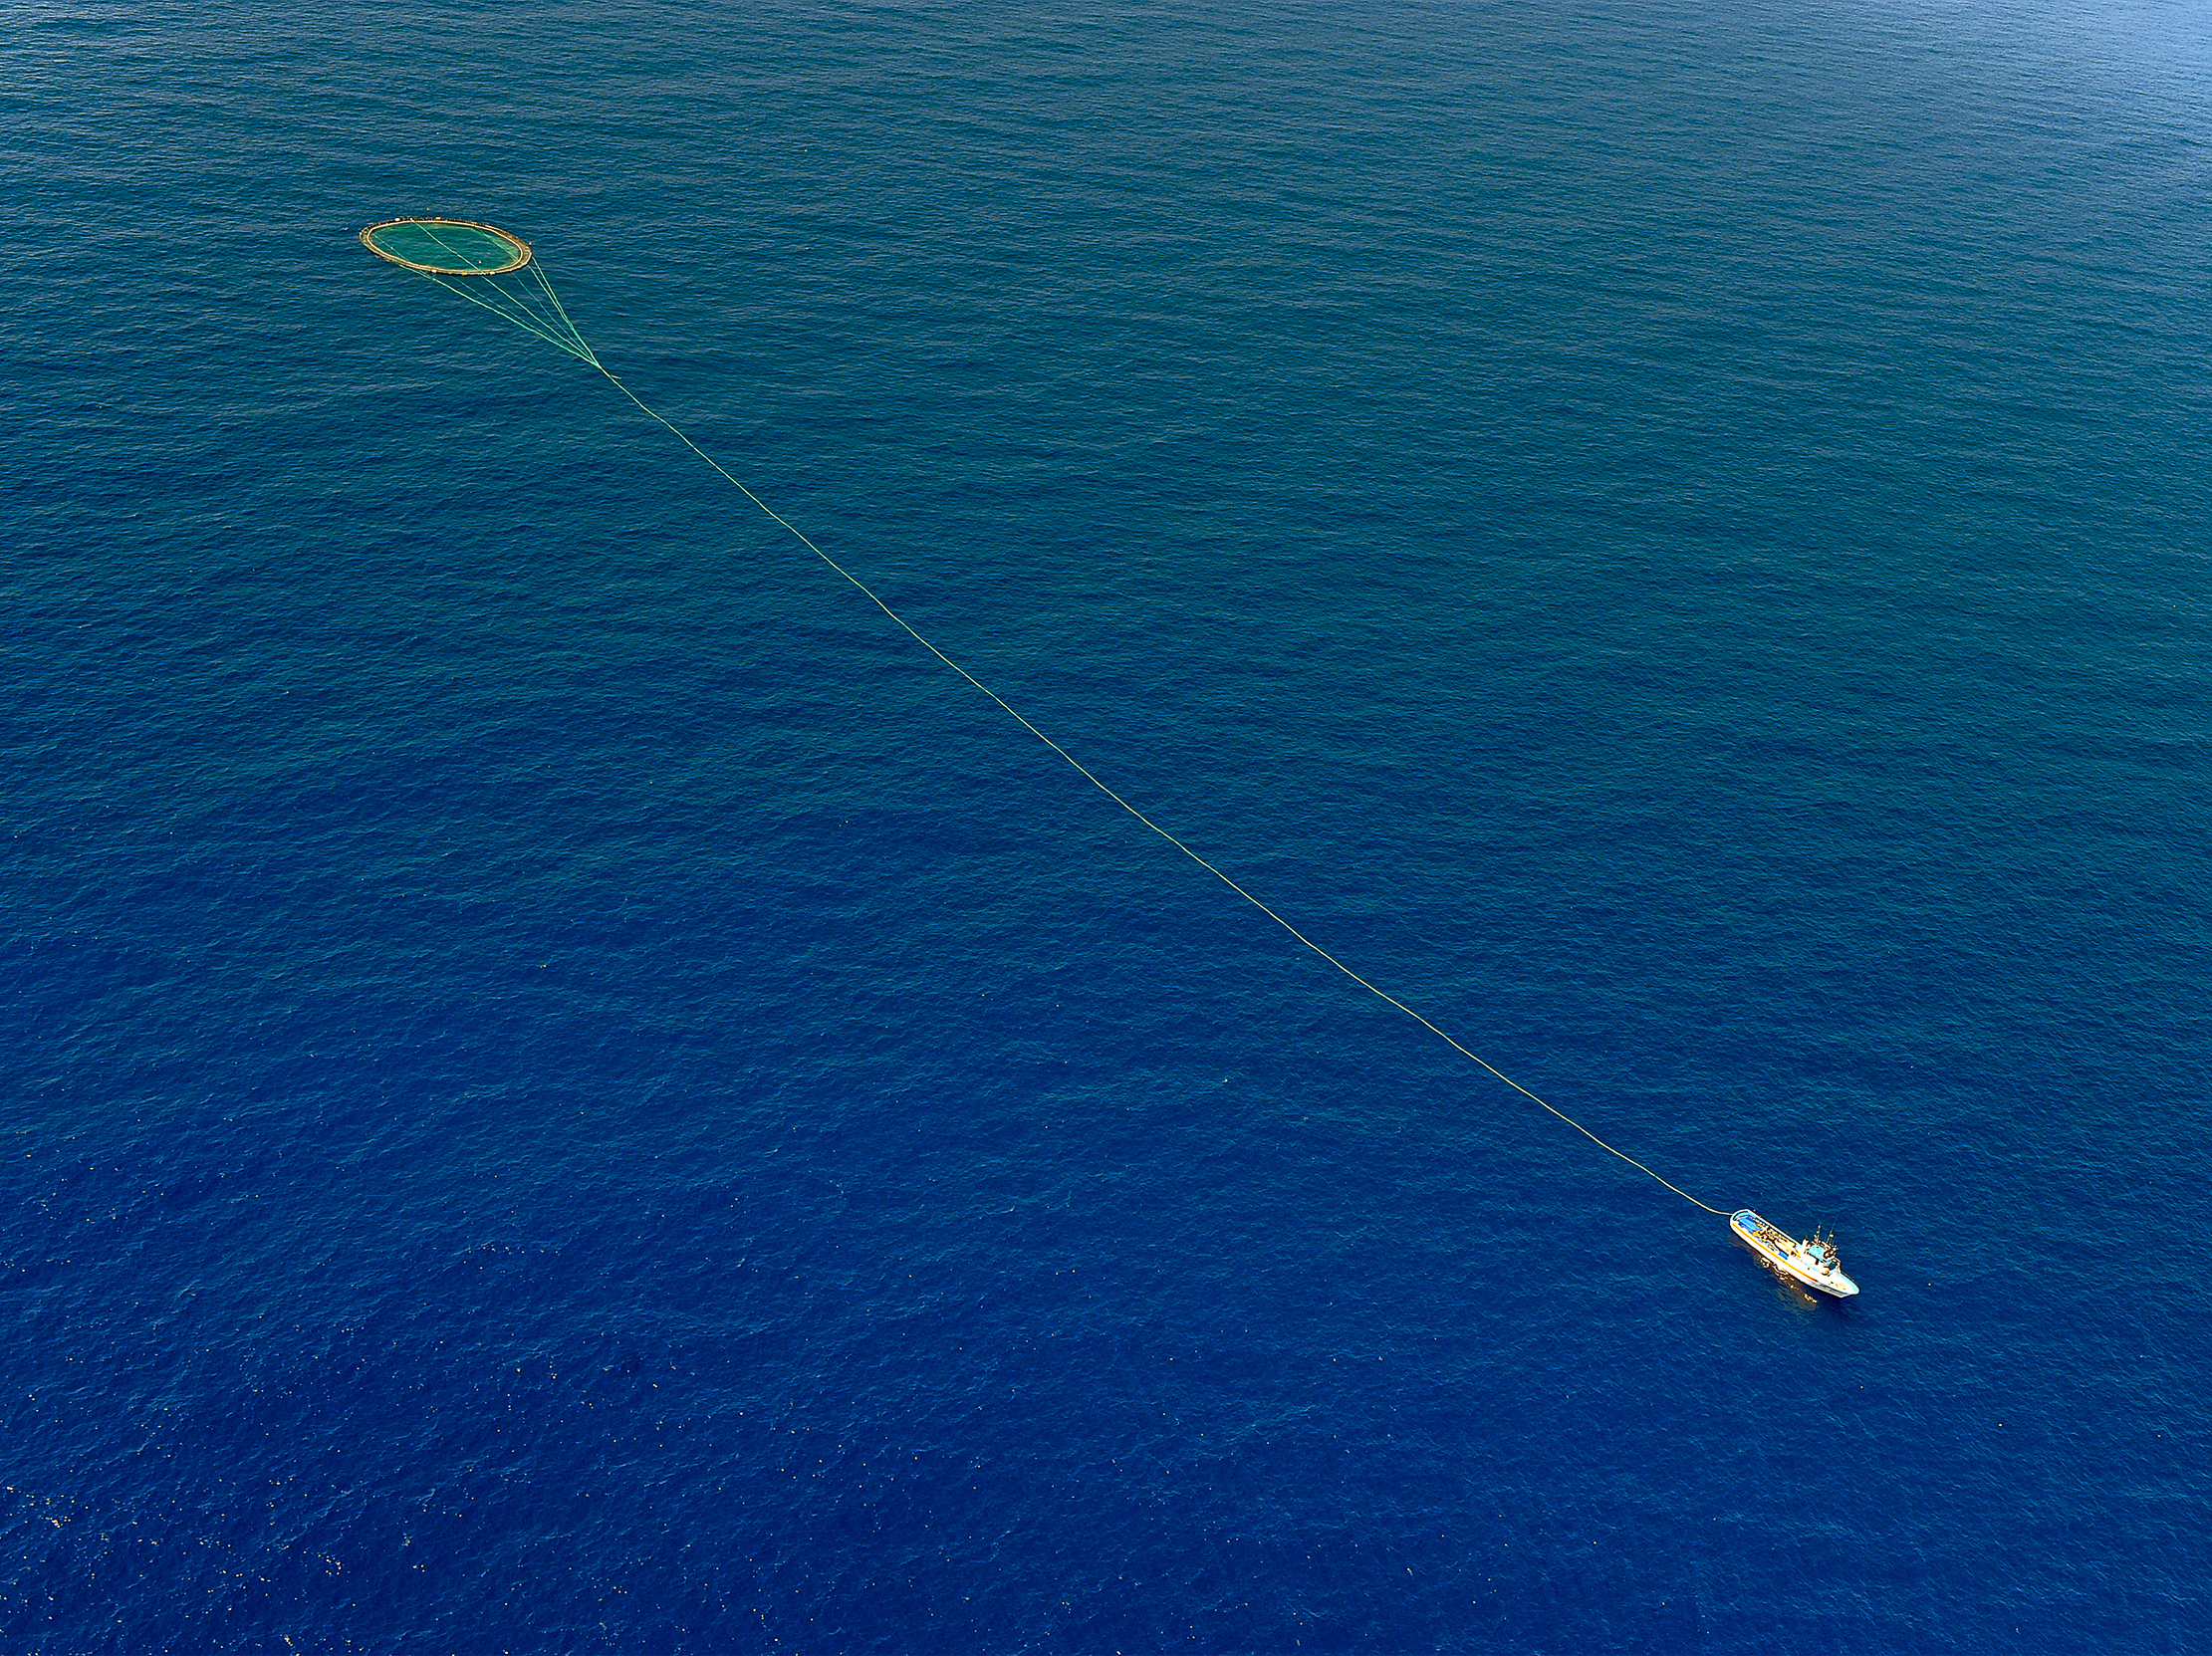 Should We Close Part Of The Ocean To Keep Fish On The Plate?